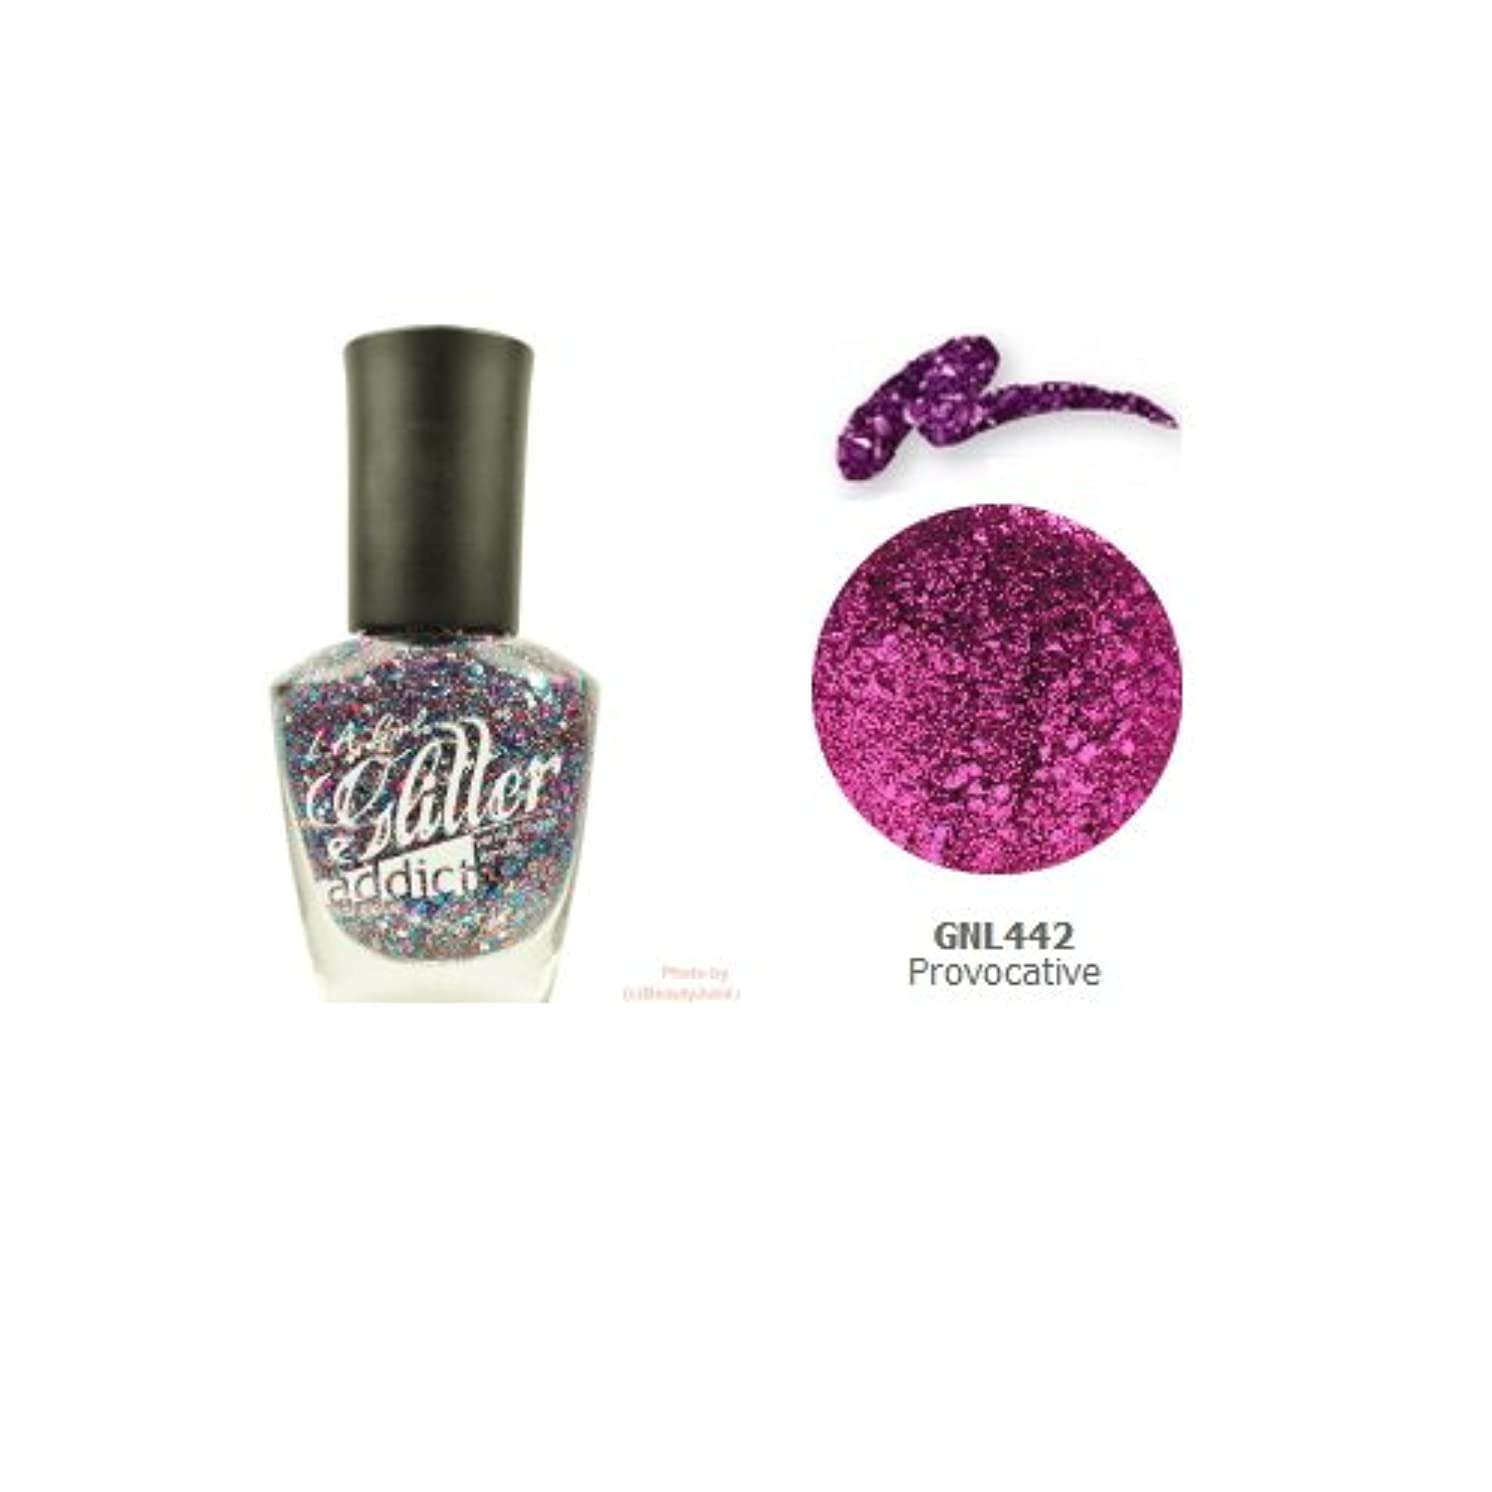 郡拮抗する恩恵(3 Pack) LA GIRL Glitter Addict Polish - Provocative (並行輸入品)